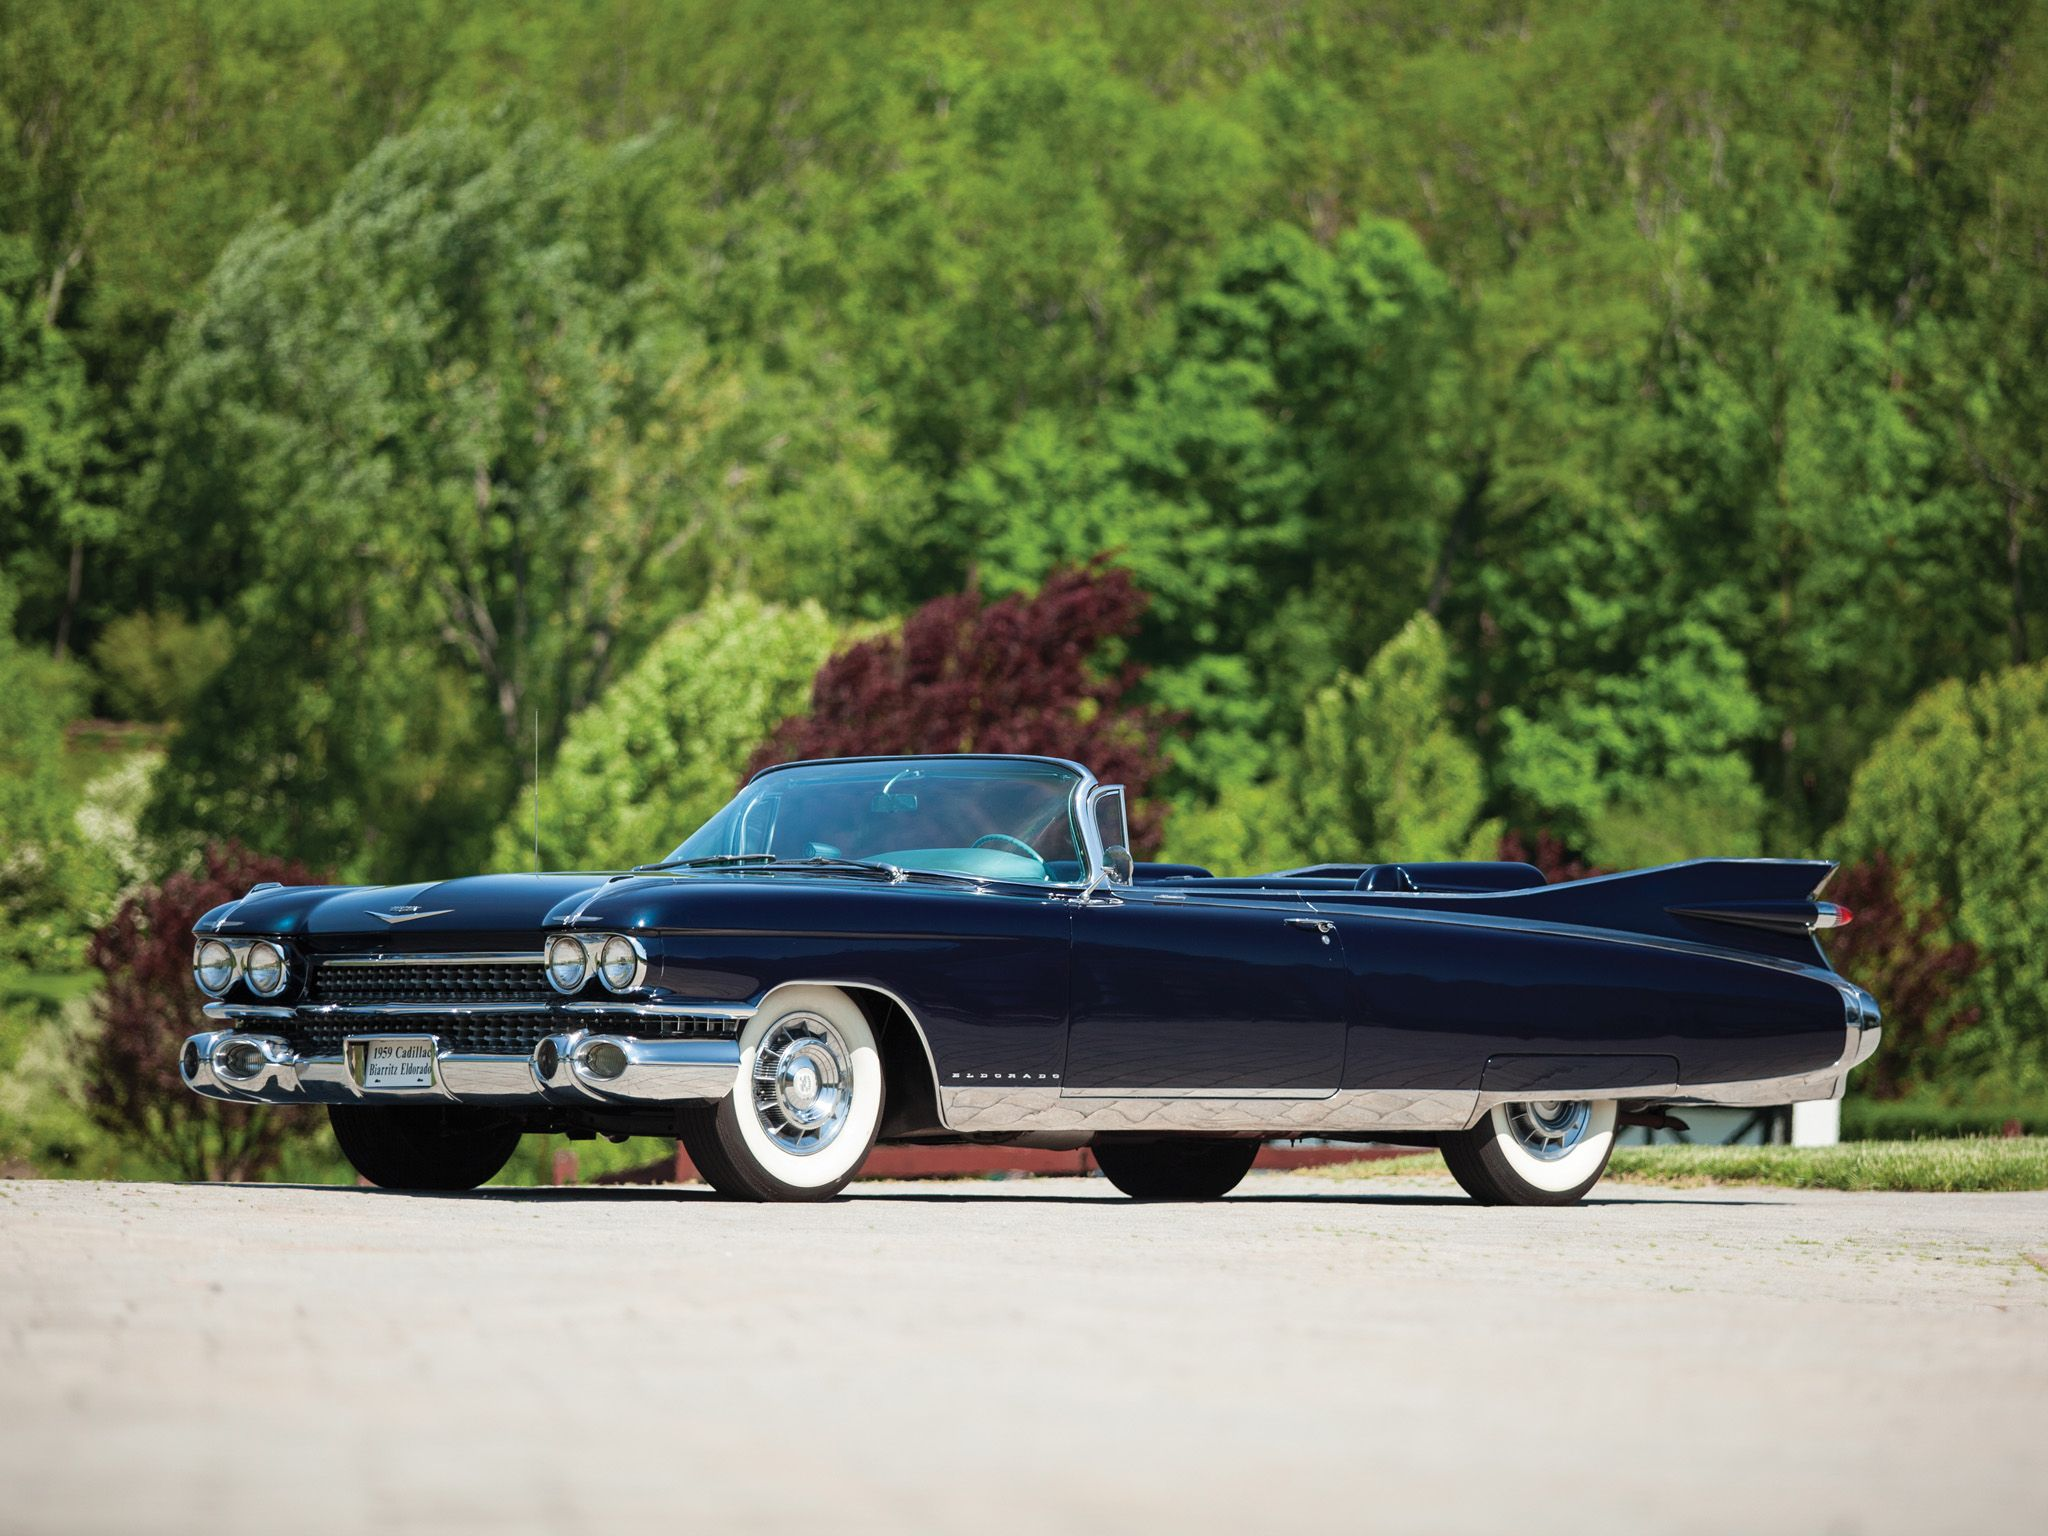 Image result for 1959 cadillac green